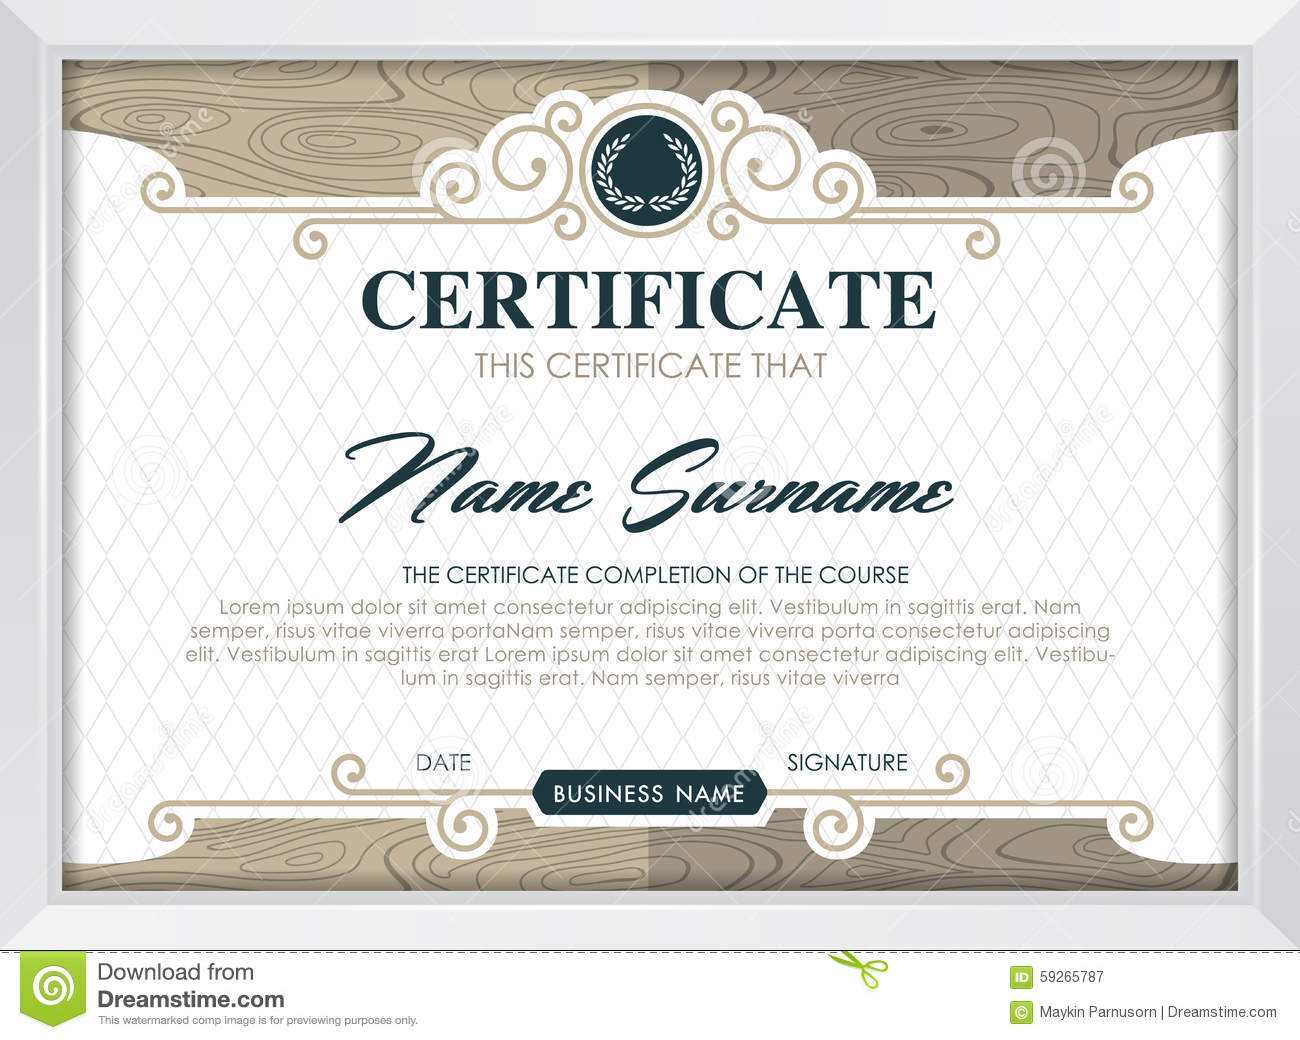 Certificate Stock Vector. Illustration Of Antique, Award Pertaining To Qualification Certificate Template